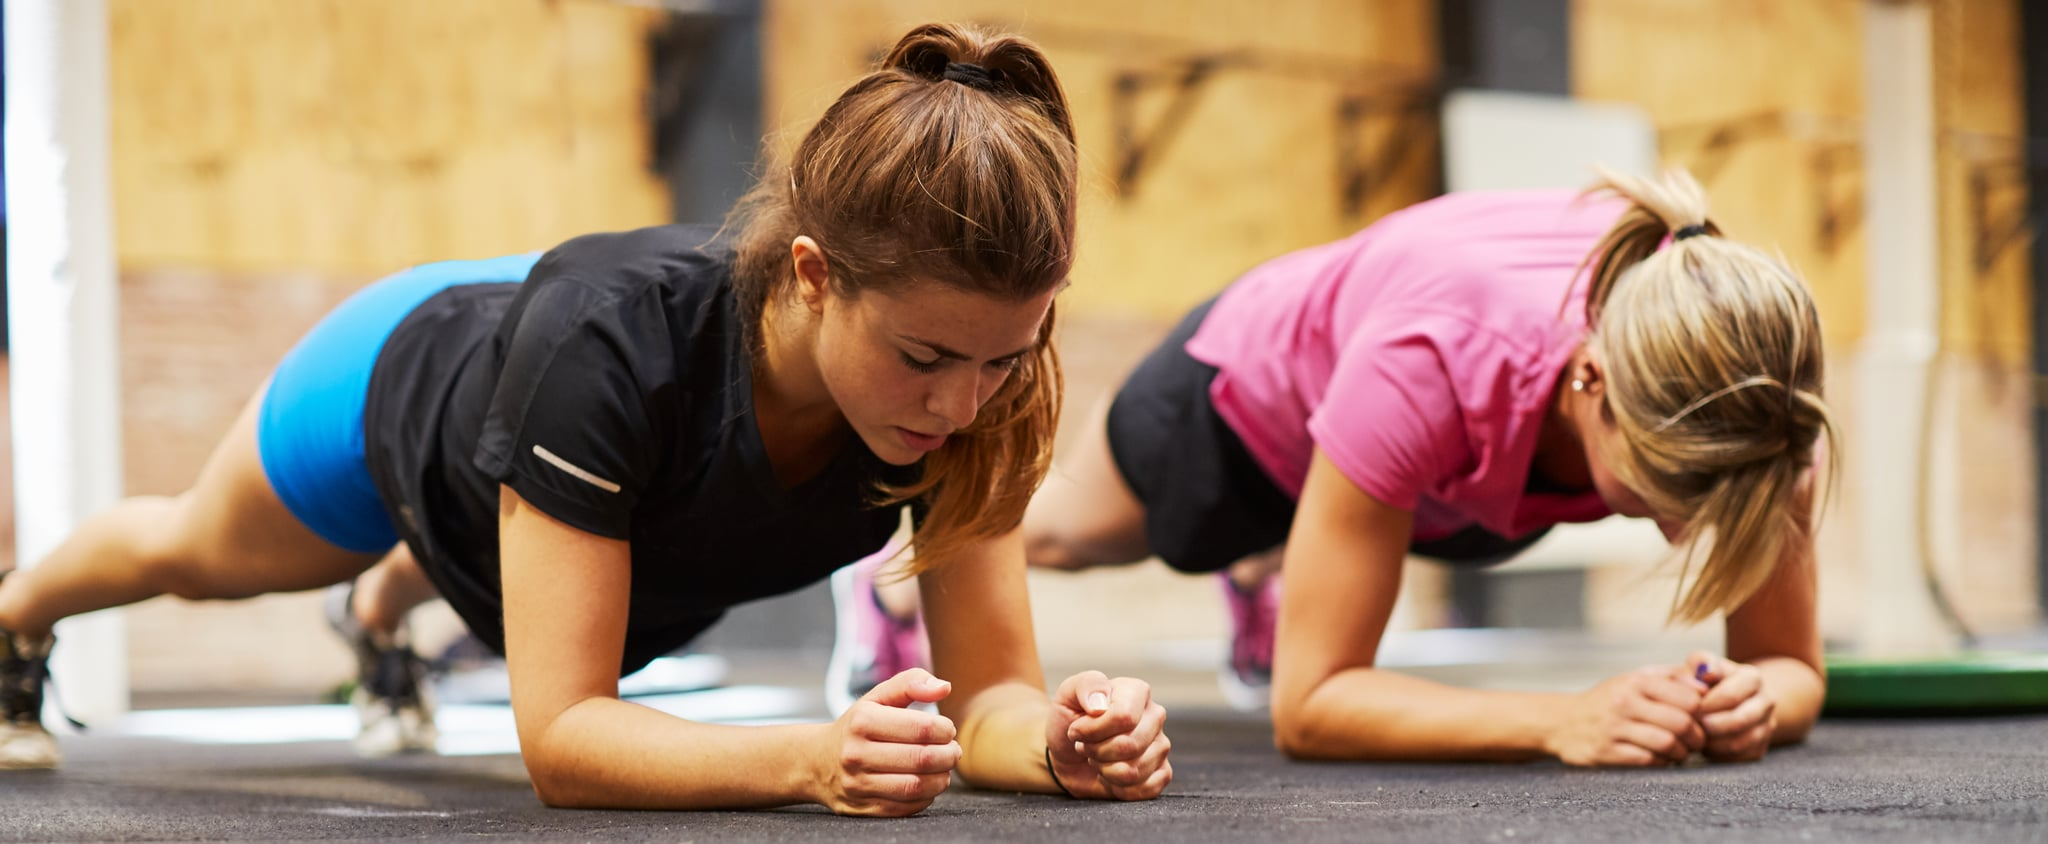 Best Exercises For a Weak Core